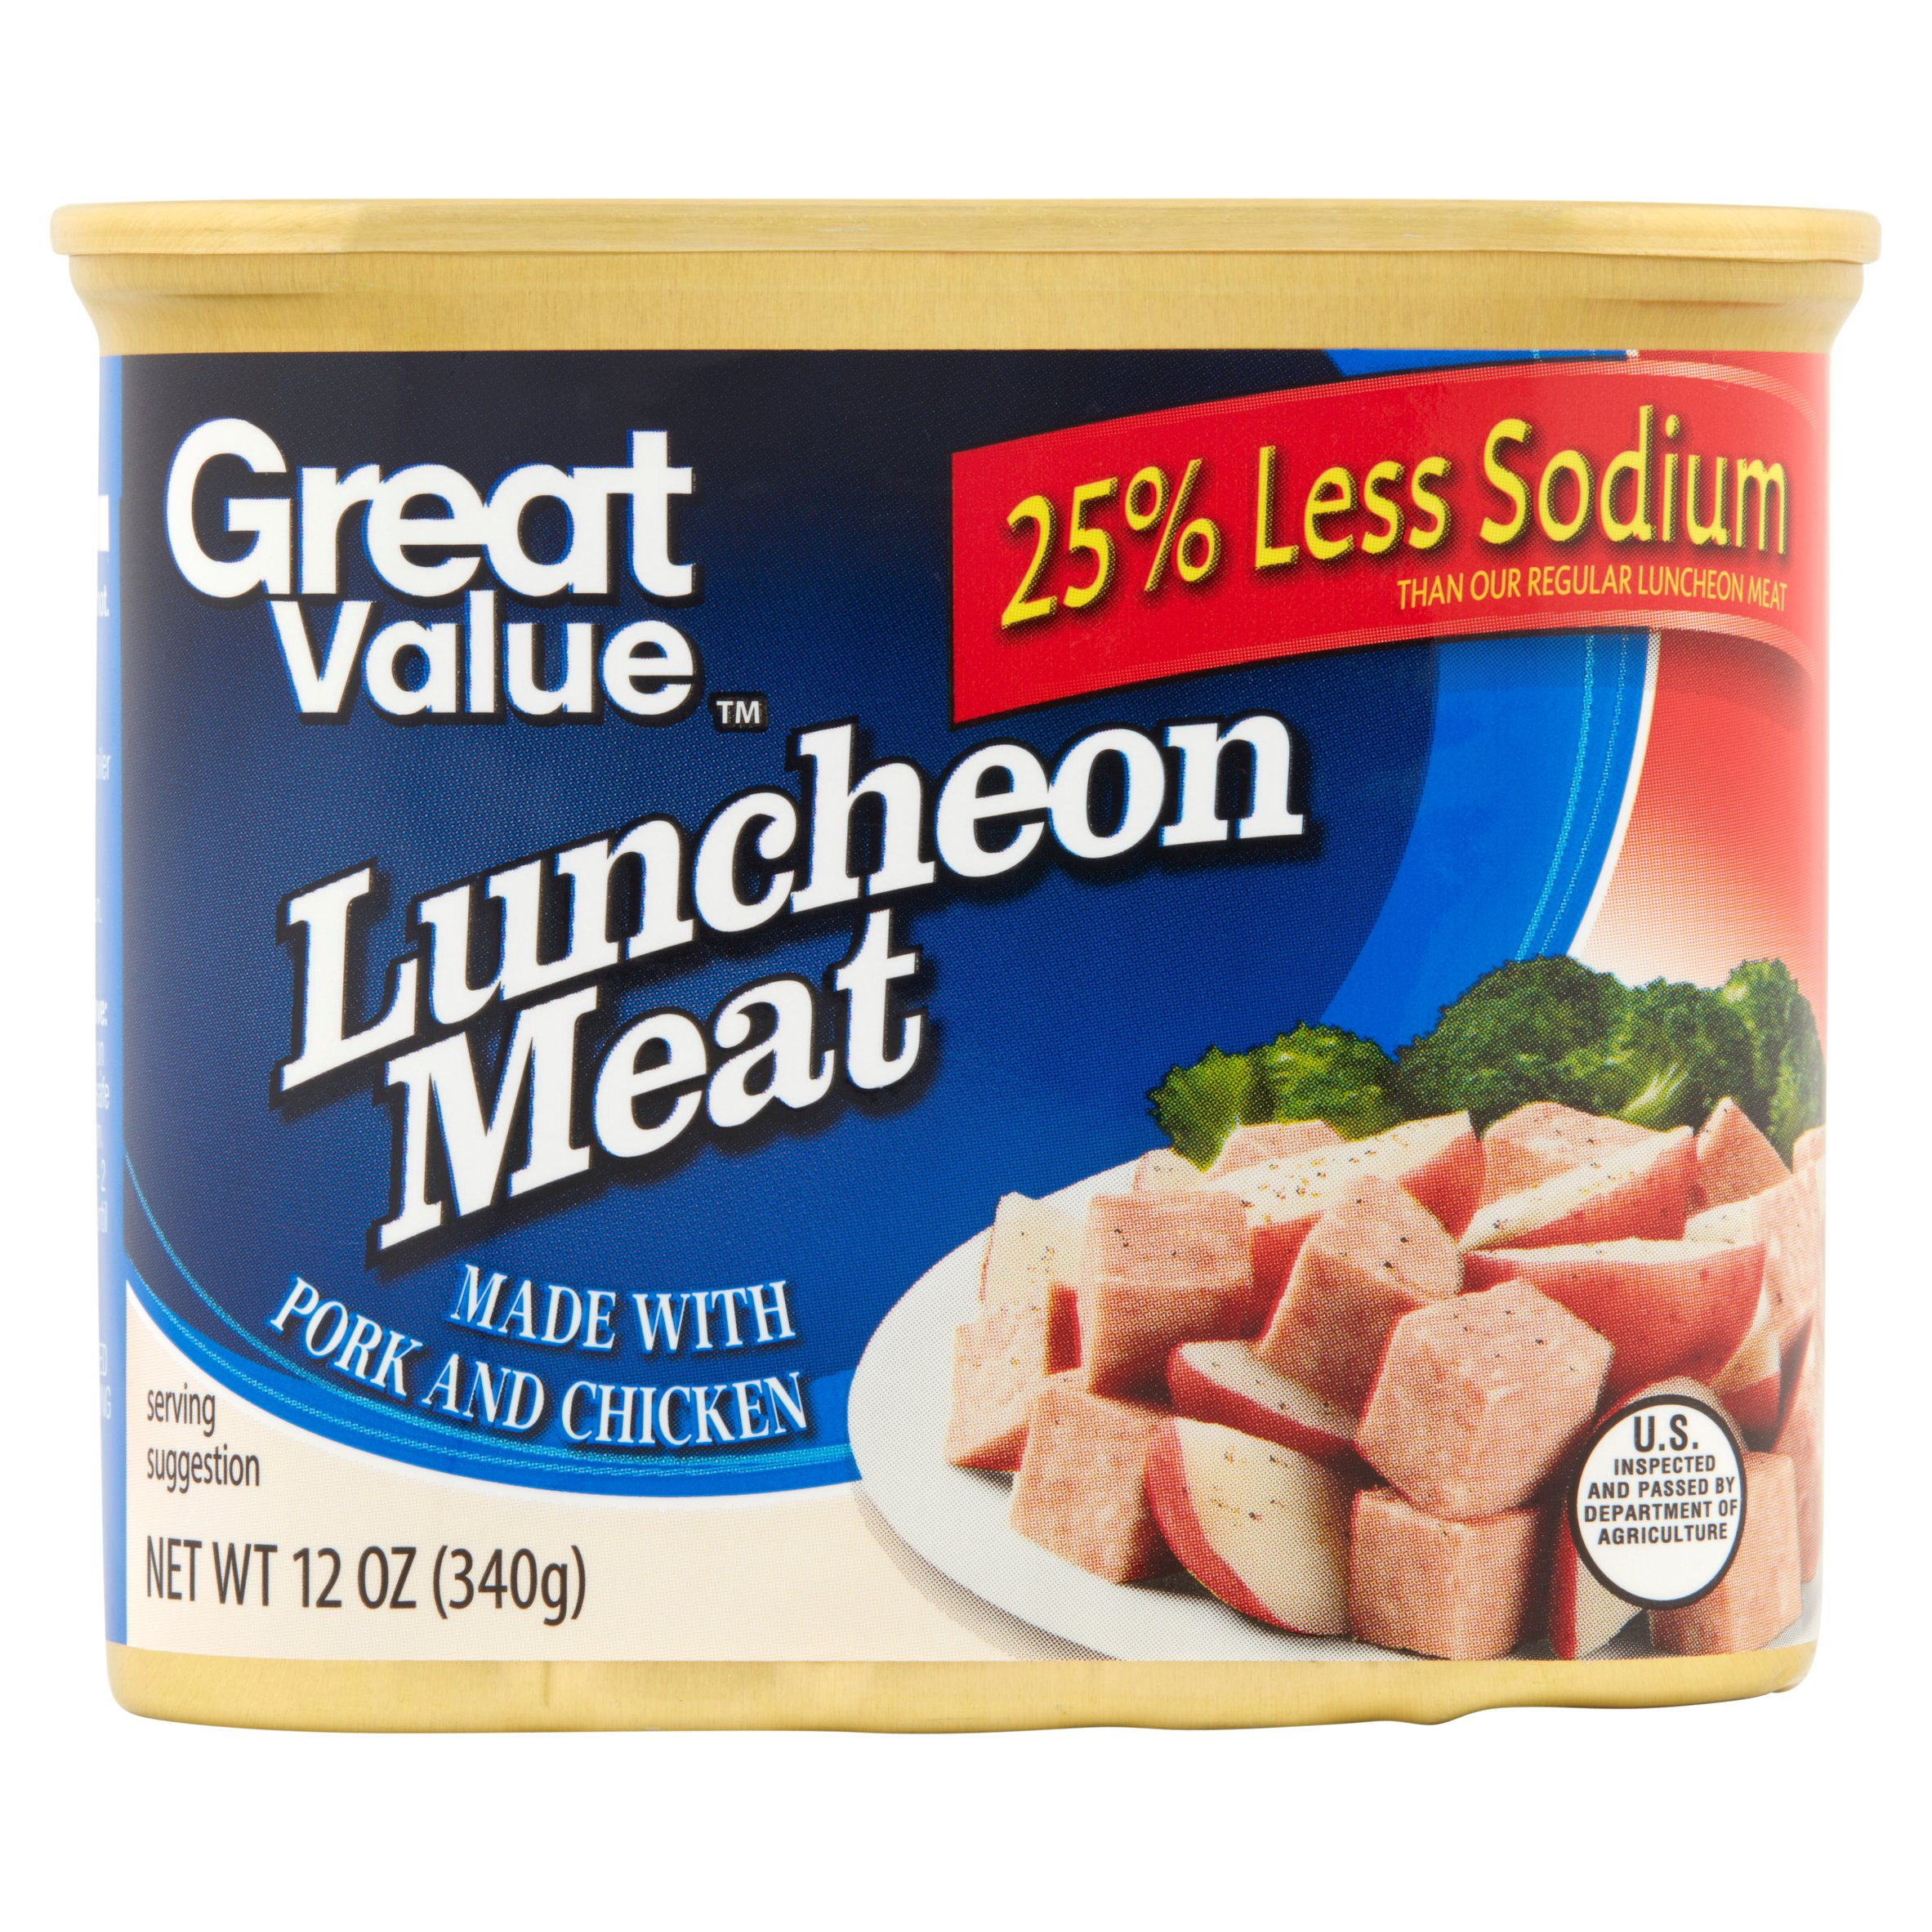 Great Value Less Sodium Luncheon Meat, 12 oz by Wal-Mart Stores, Inc.